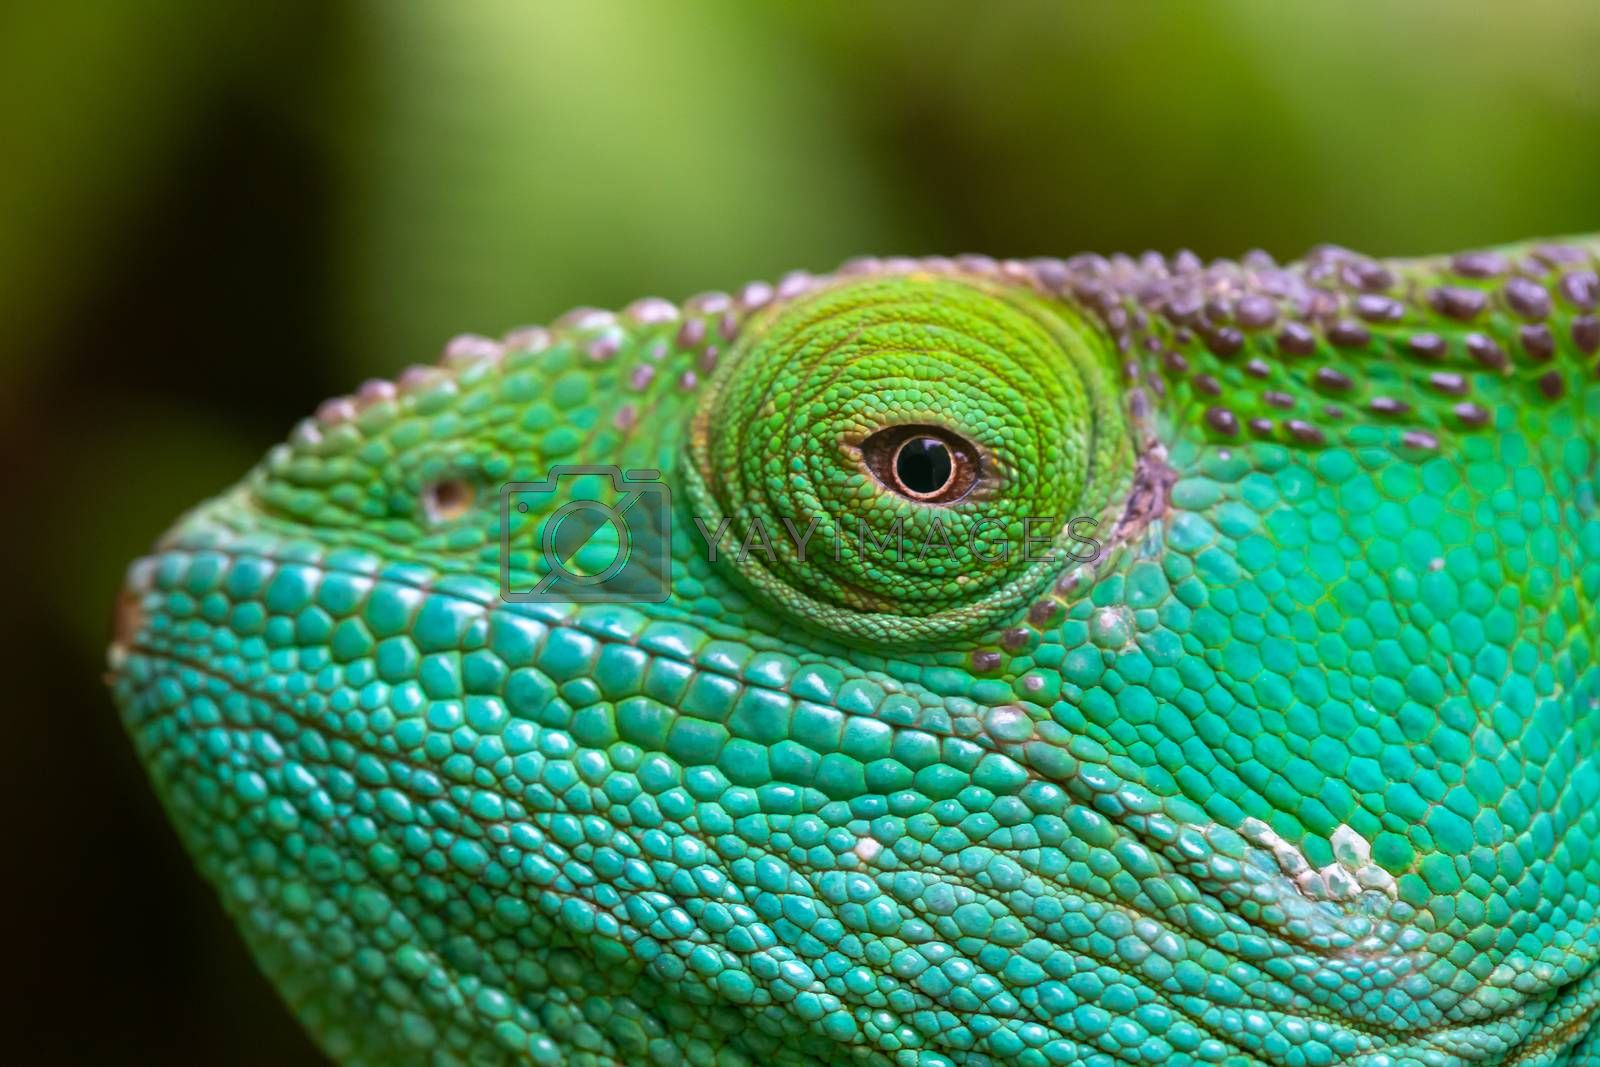 A Close-up, macro shot of a green chameleon